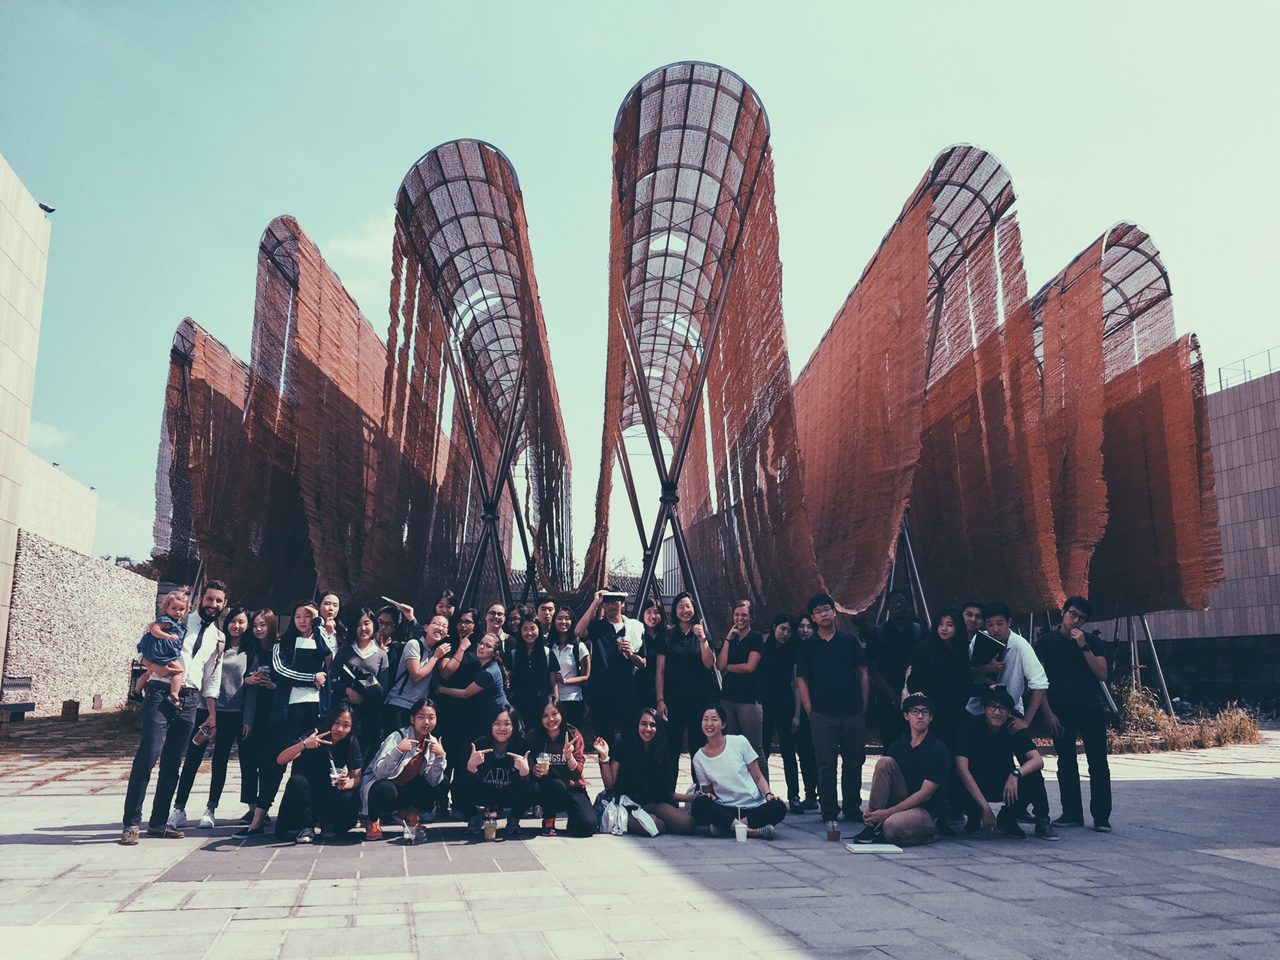 Students in front of the Young Architects project at the Museum of Modern + Contemporary Art.